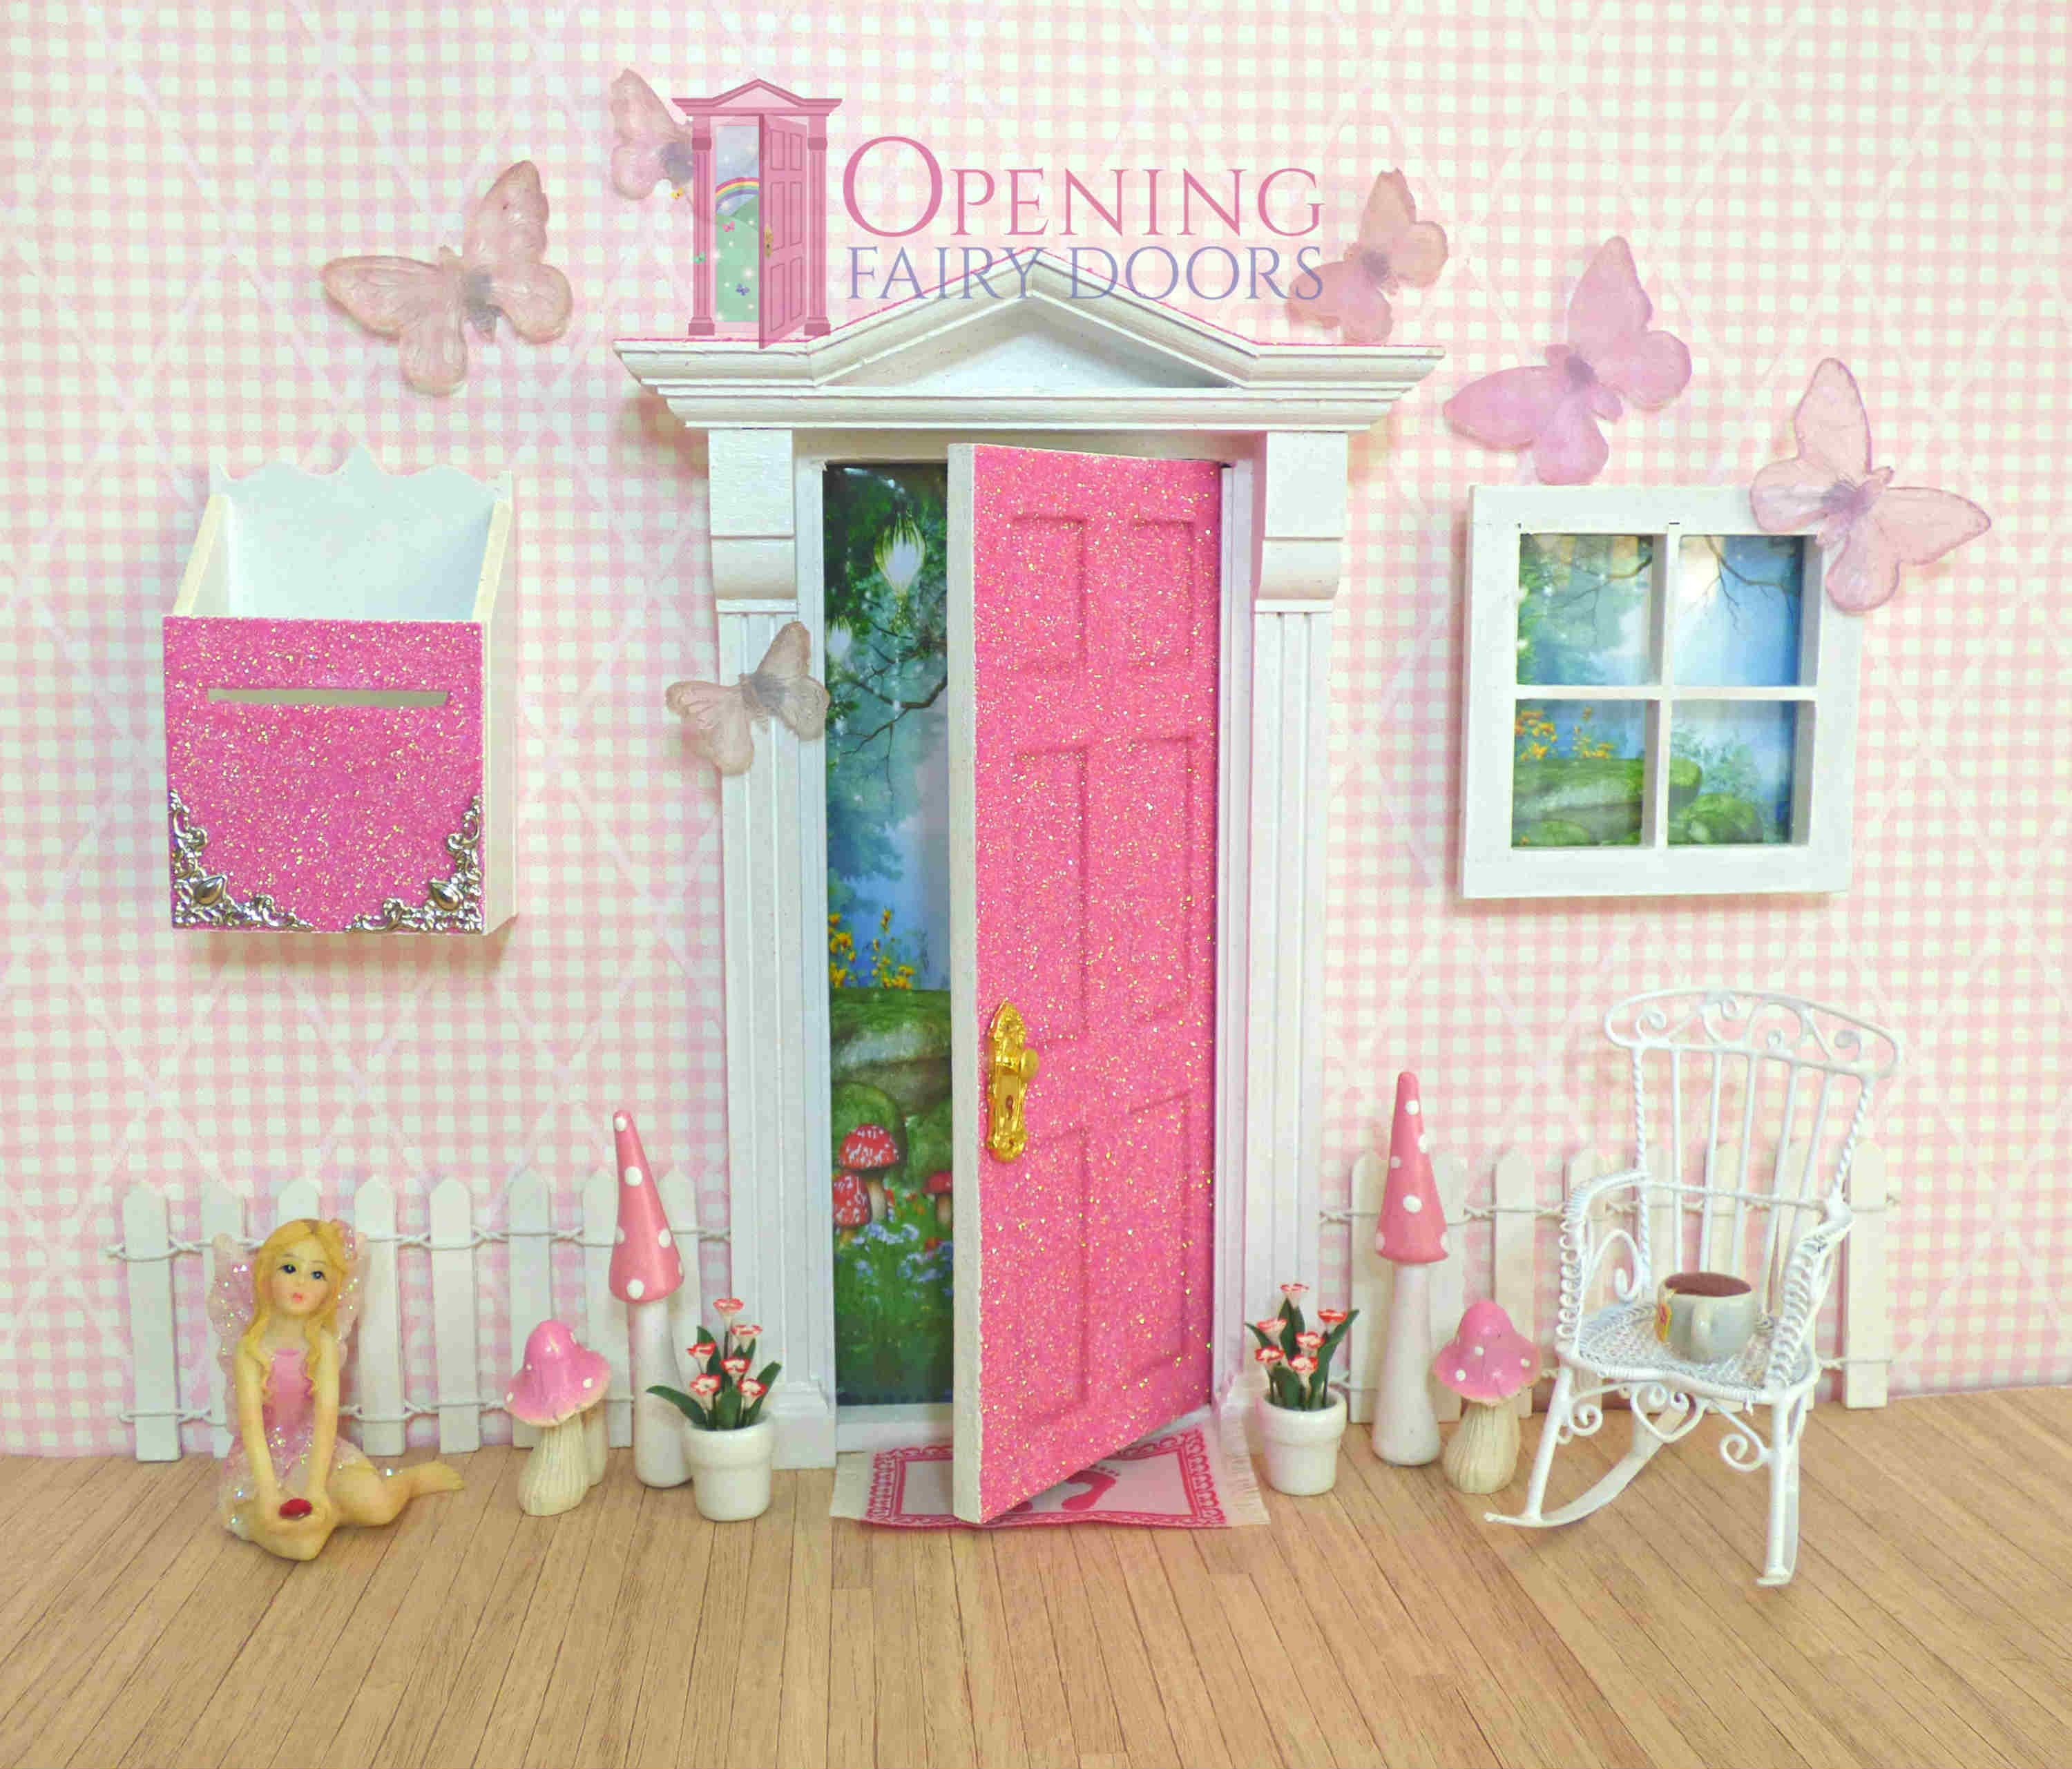 Pink Glitter Opening Fairy Door With Accessories From Opening Fairy Doors Australian Made And Austral Fairy Doors Opening Fairy Doors Fairy Door Accessories